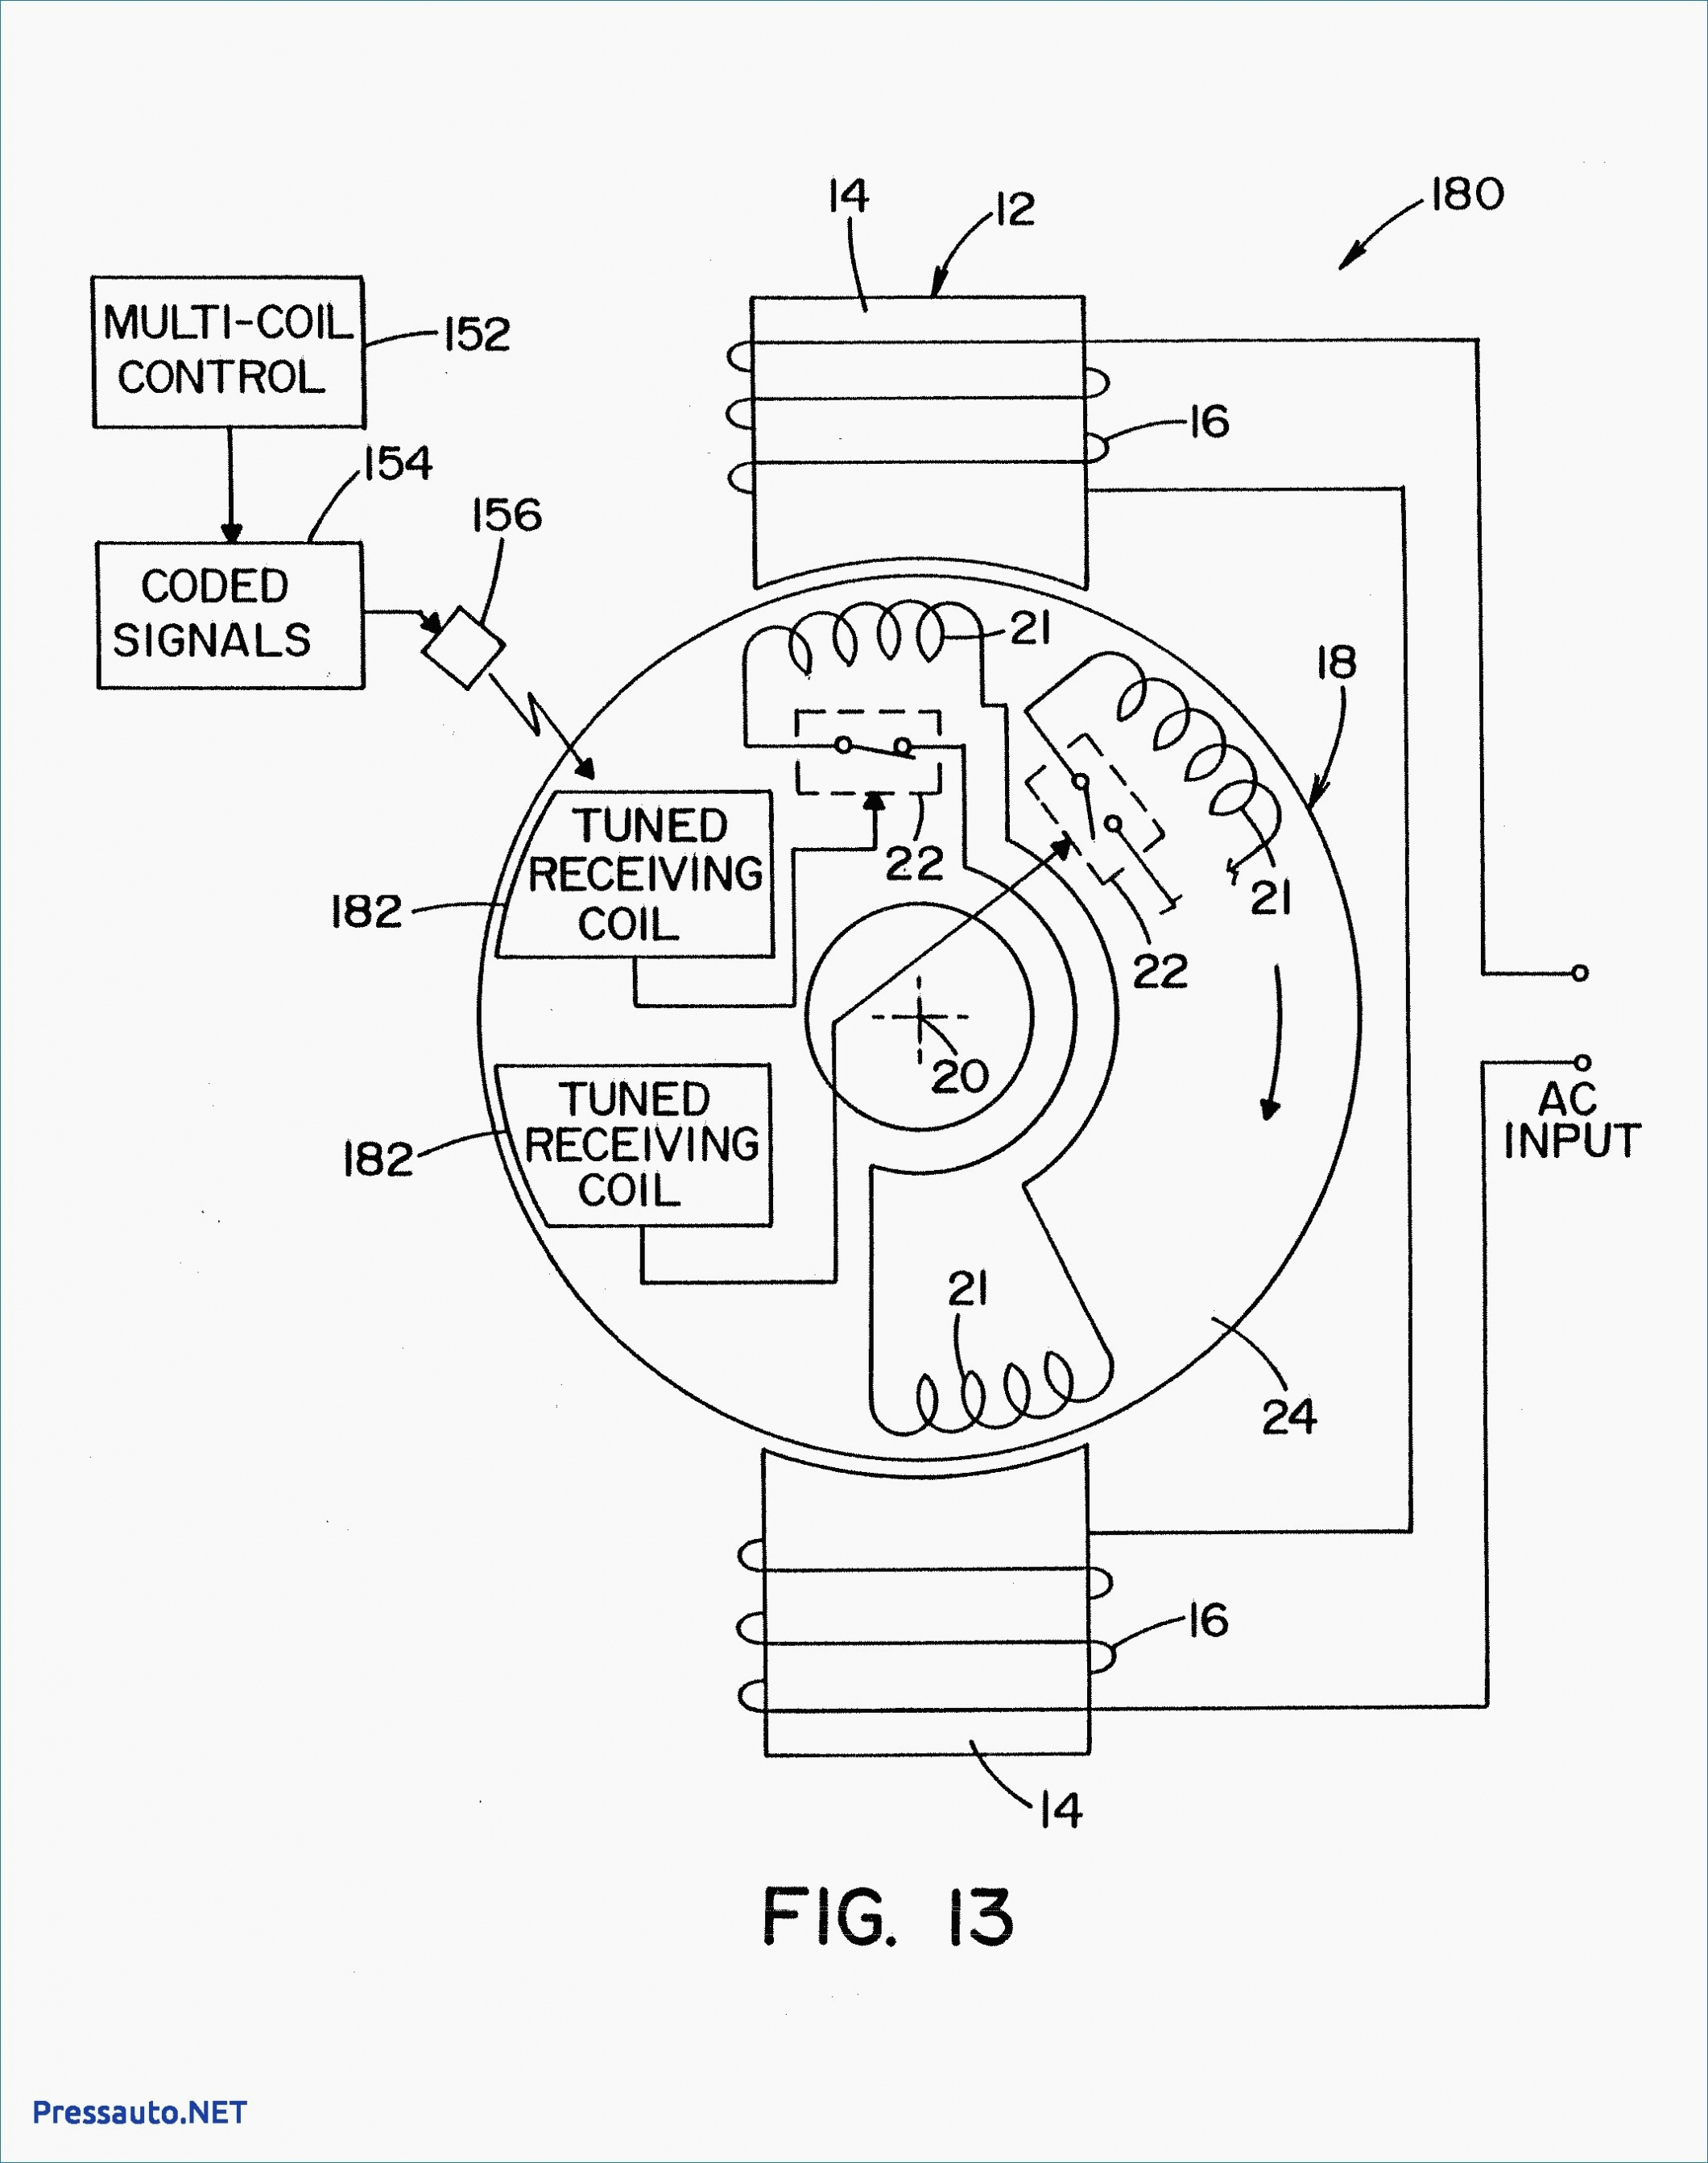 Dayton Electric Motors Wiring Diagram Download — Manicpixi - Dayton Electric Motors Wiring Diagram Download